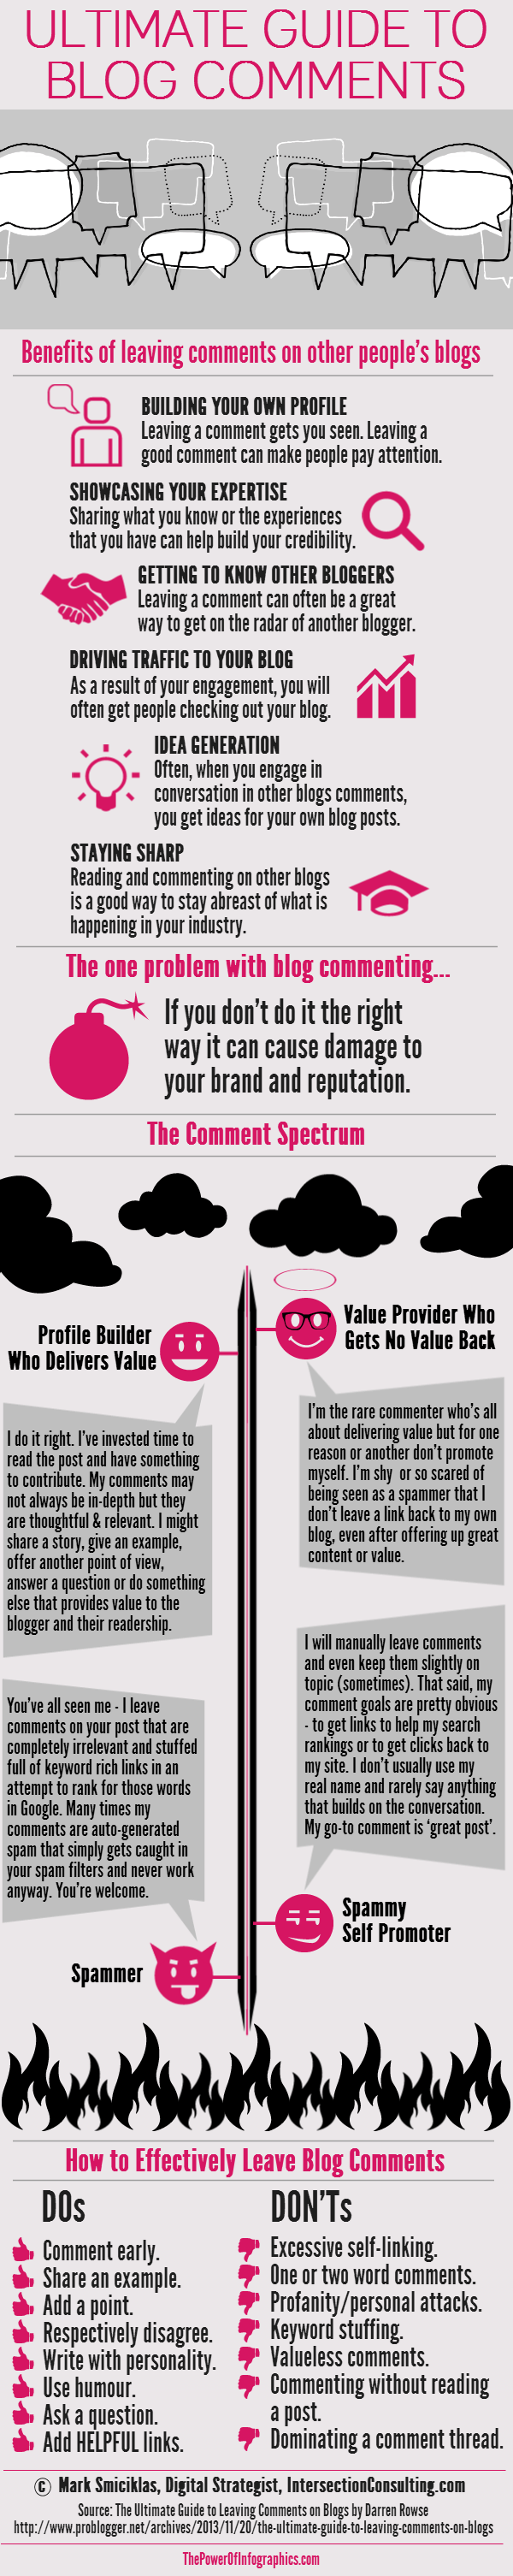 Ultimate Guide to Blog Comments Infographic